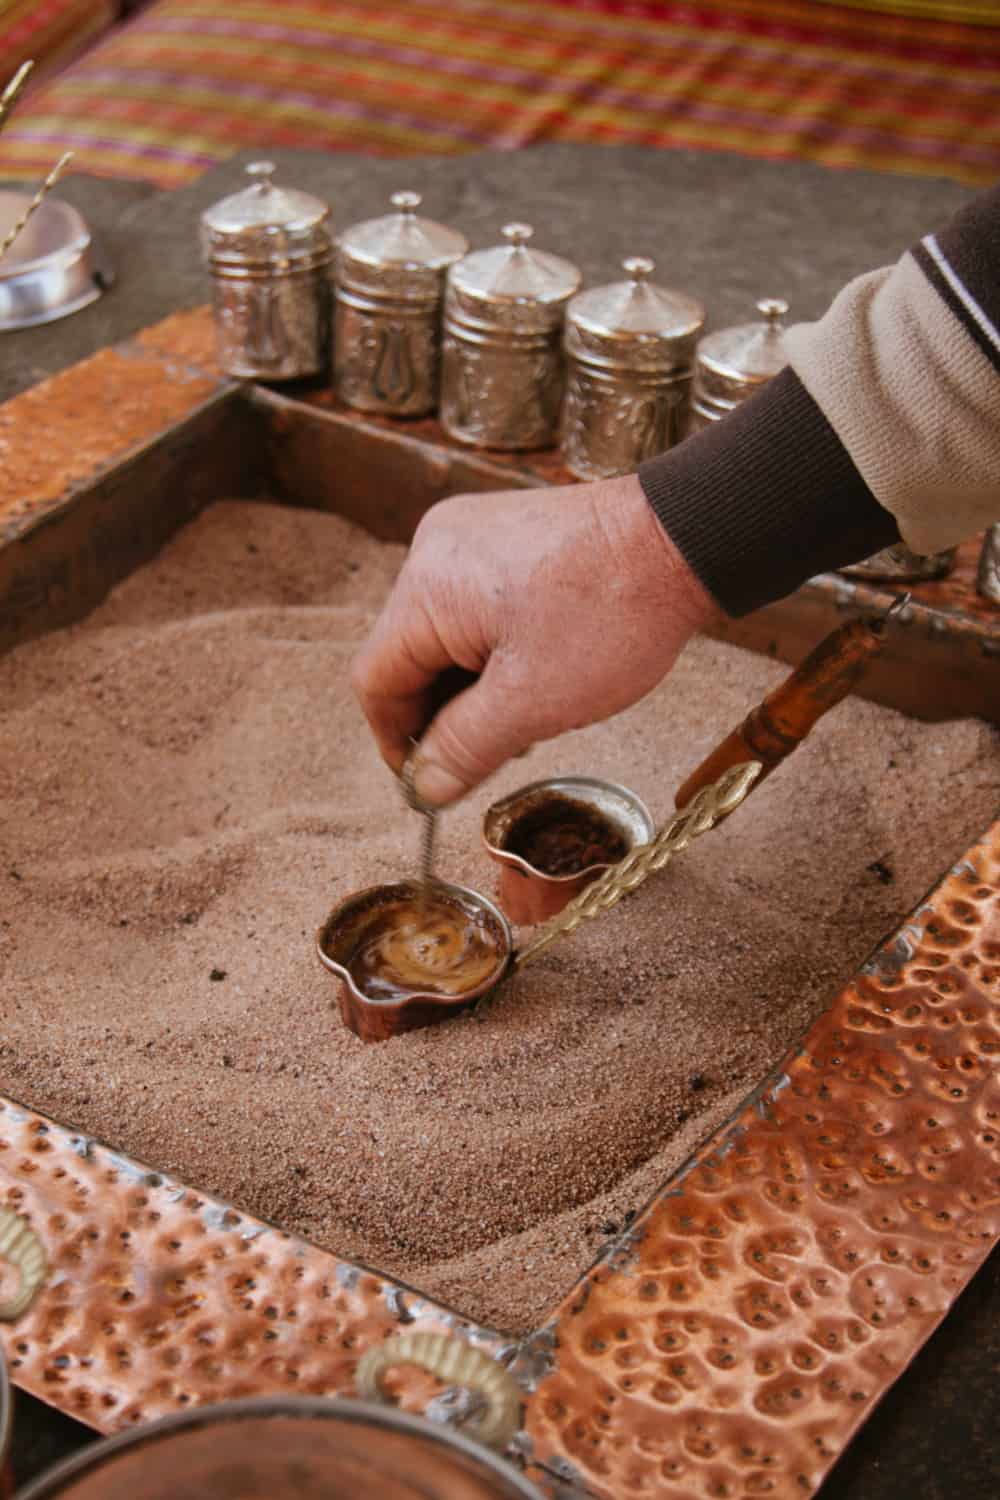 Turkish coffee, 1 heaped tablespoon per cup